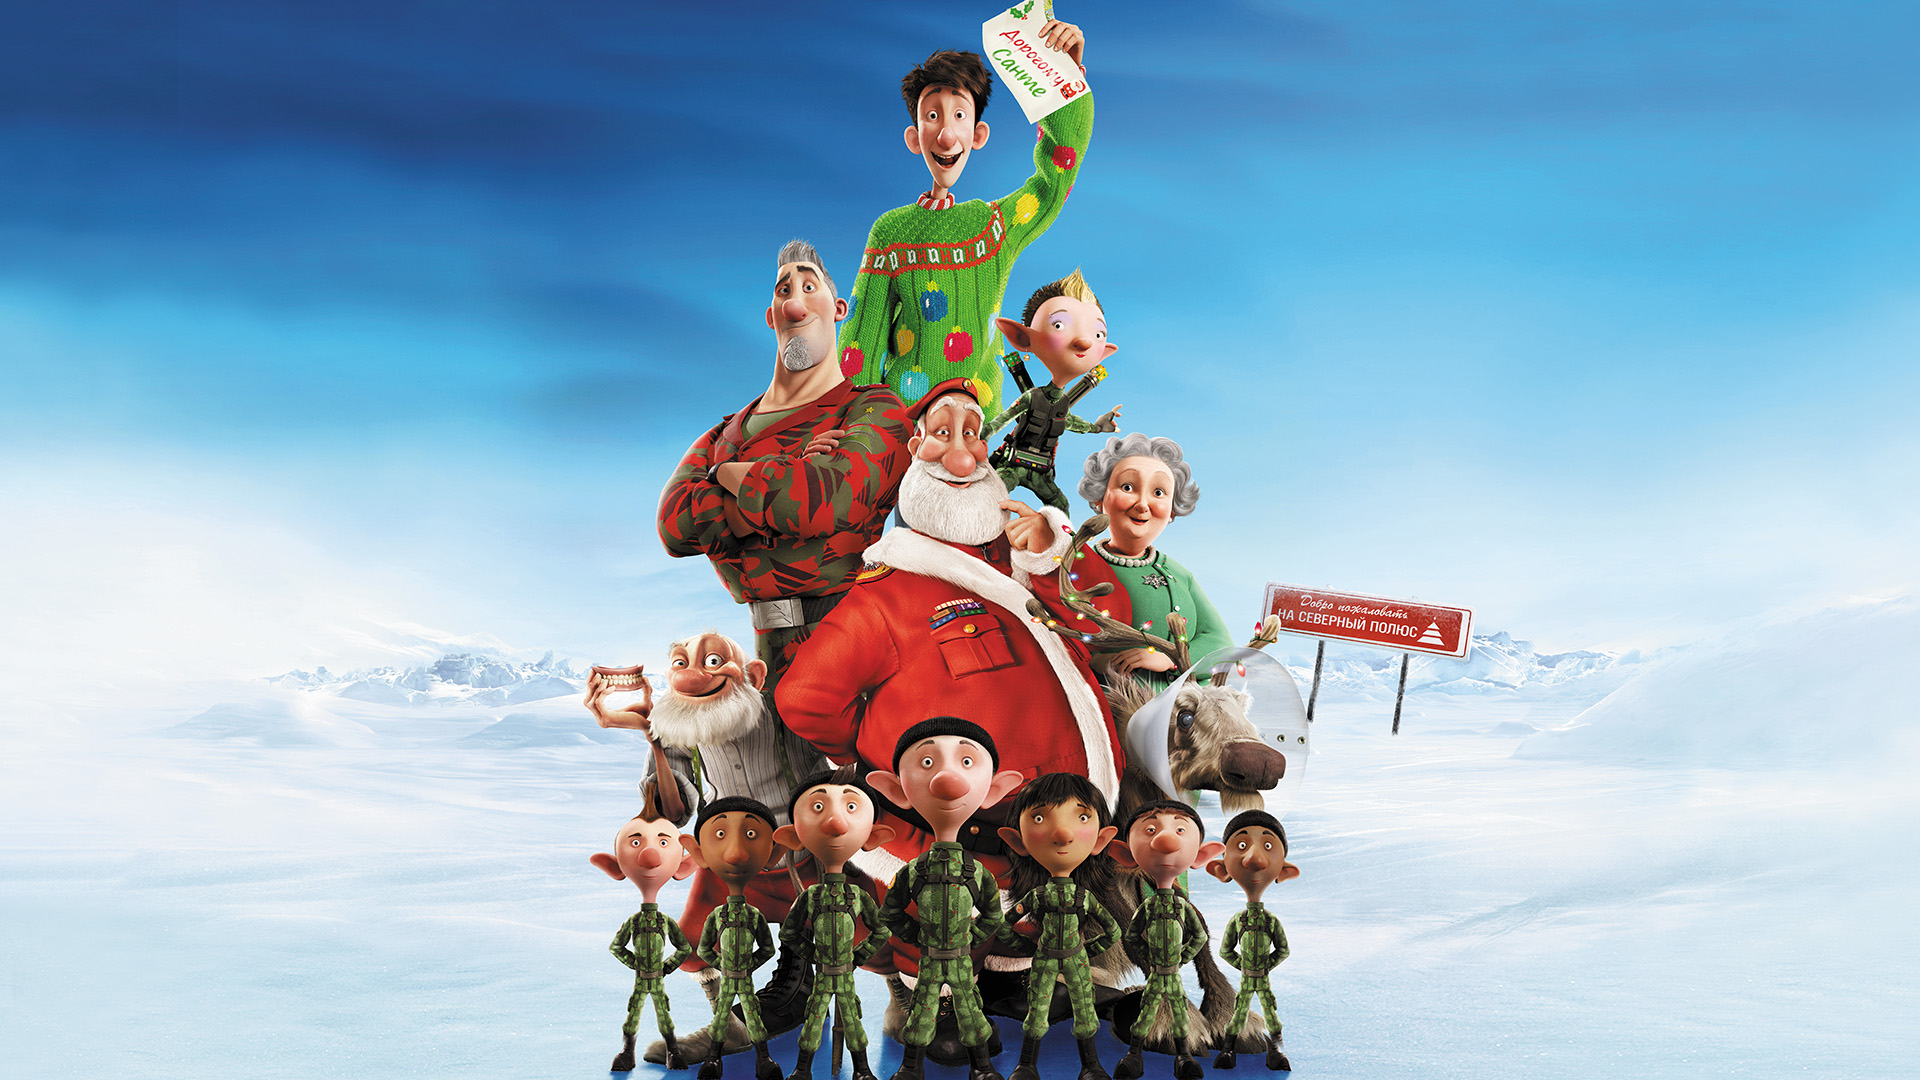 Arthur Christmas Full HD Wallpaper And Background Image